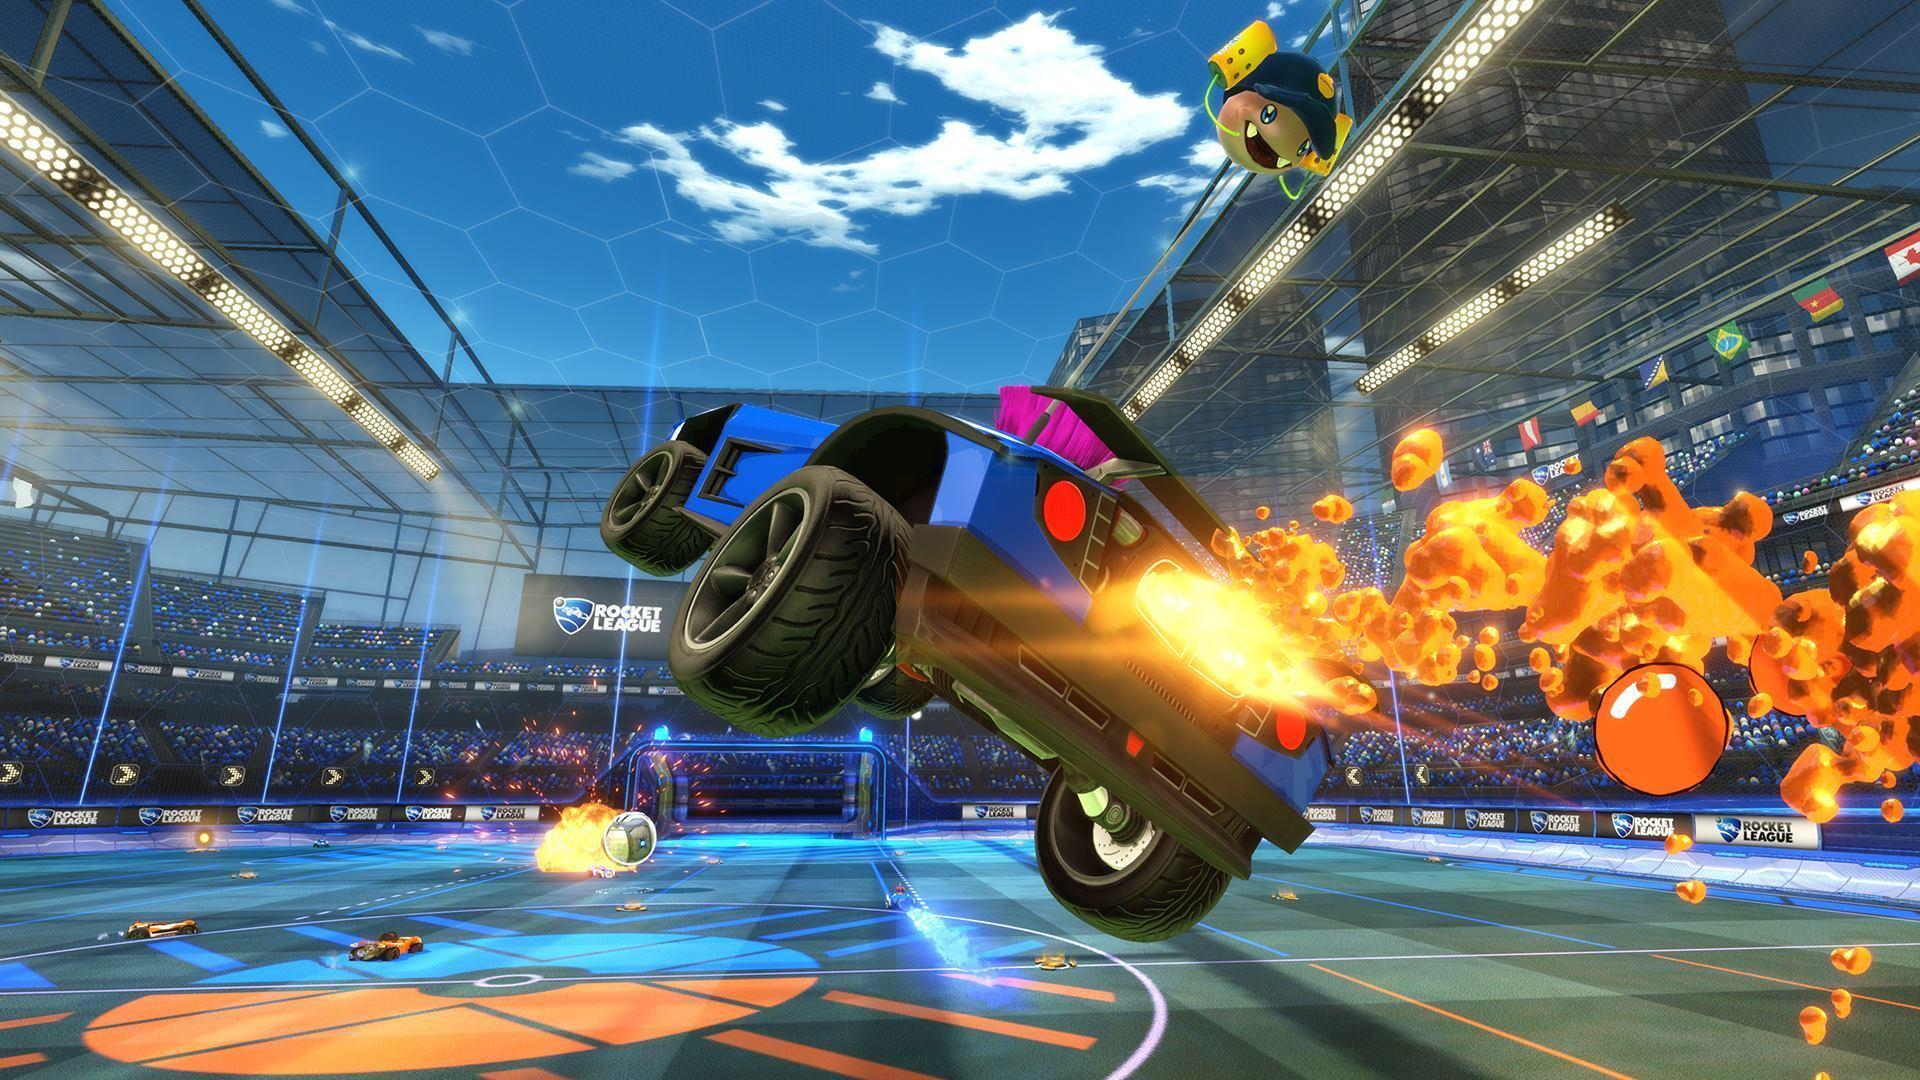 Rocket League is Coming to Xbox One on February 17 Image